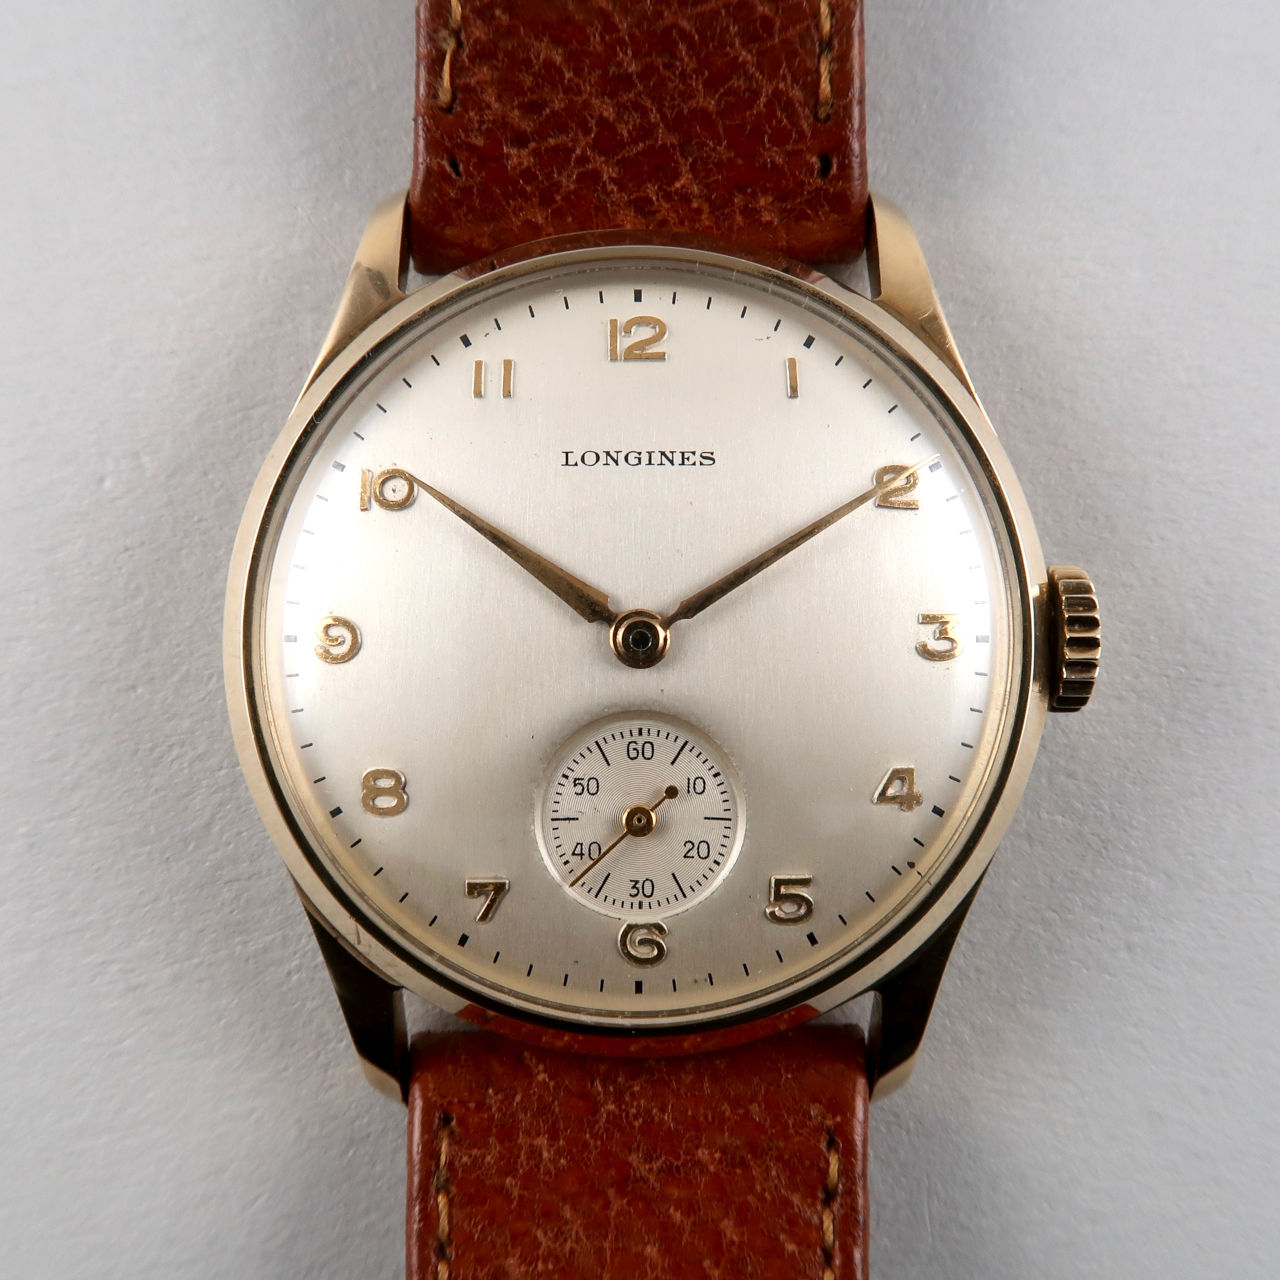 Longines Ref. 4858 invoiced 1949 | 14ct gold vintage wristwatch